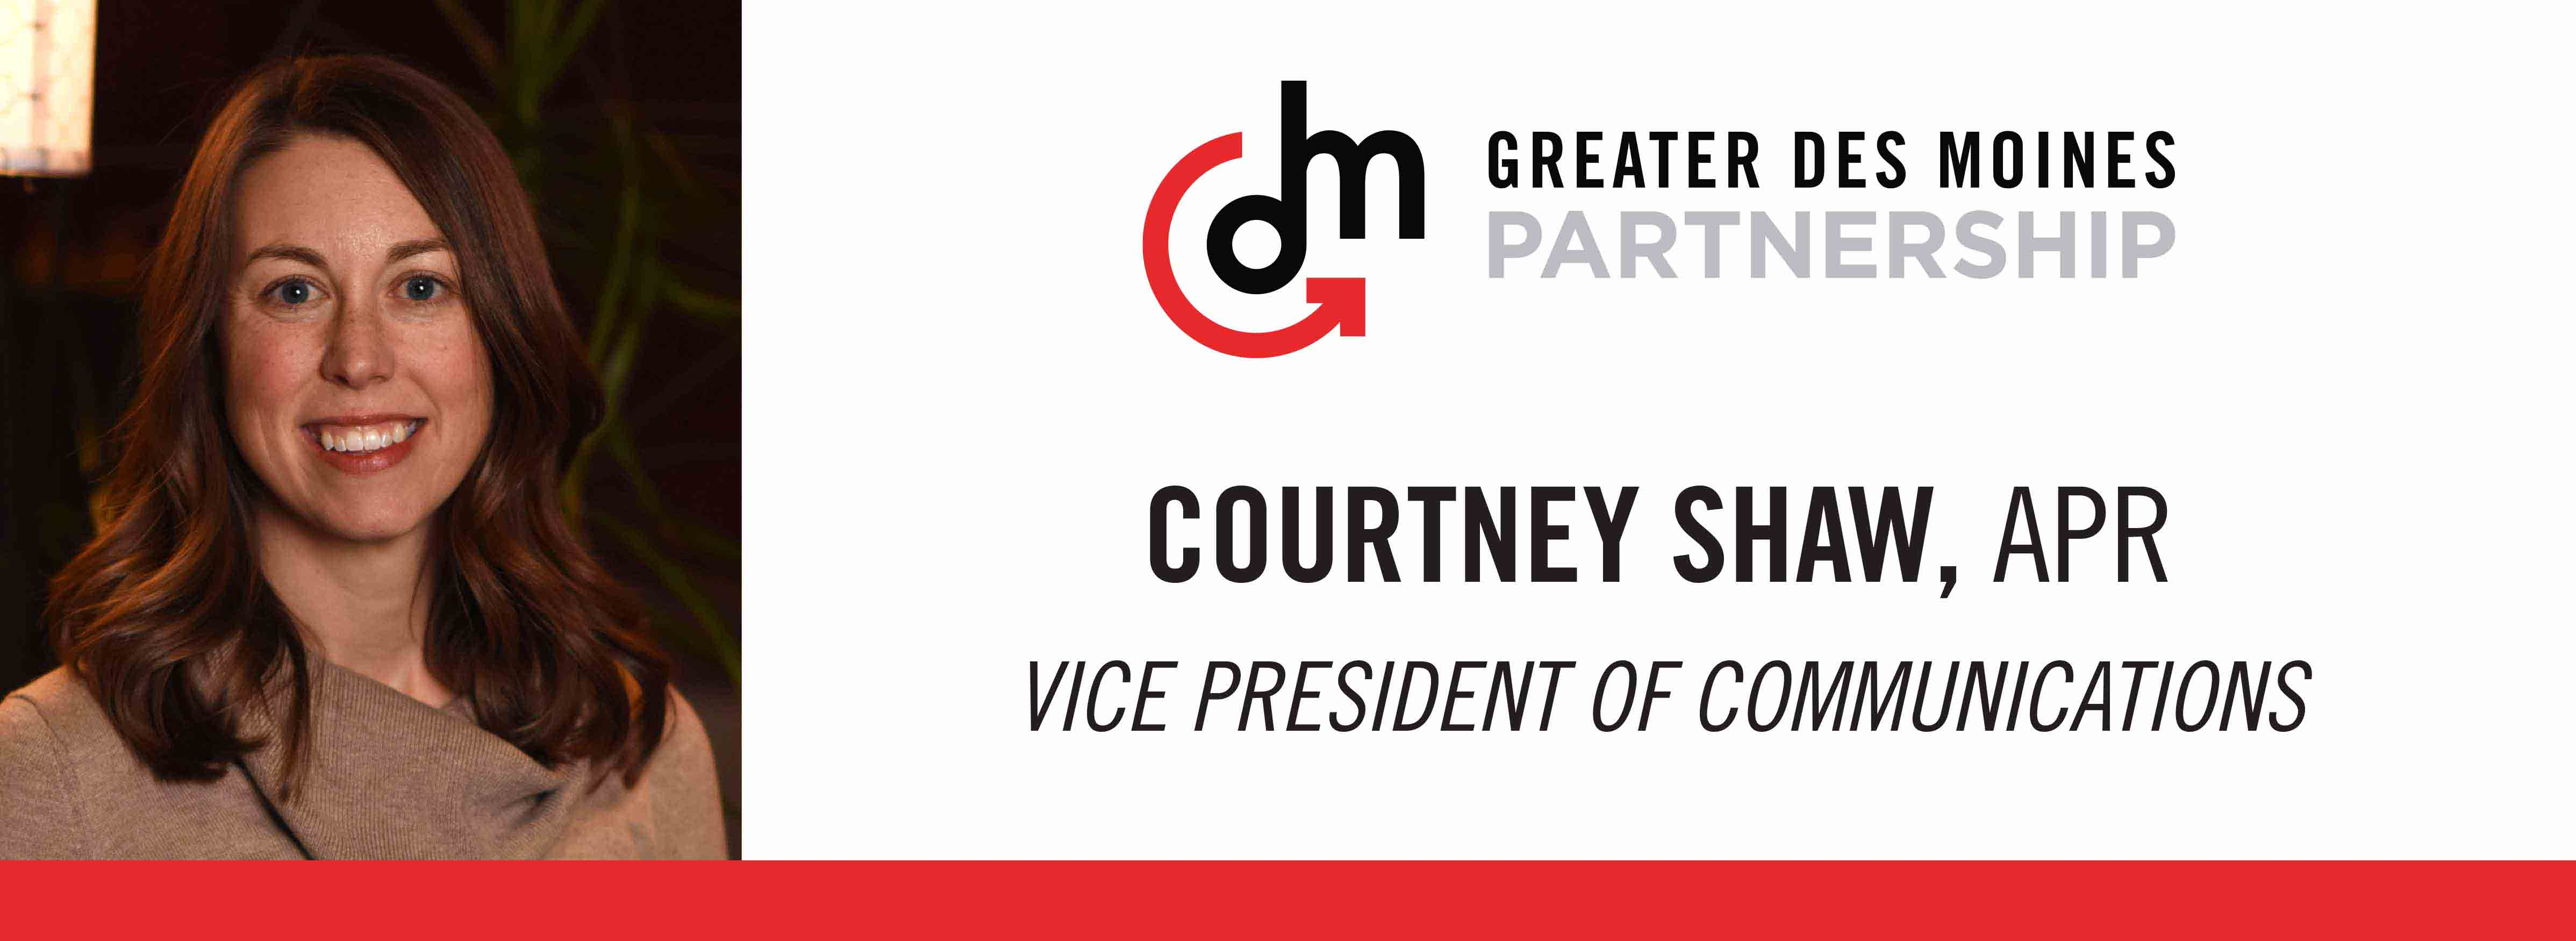 Courtney Shaw, APR, Vice President of Communications